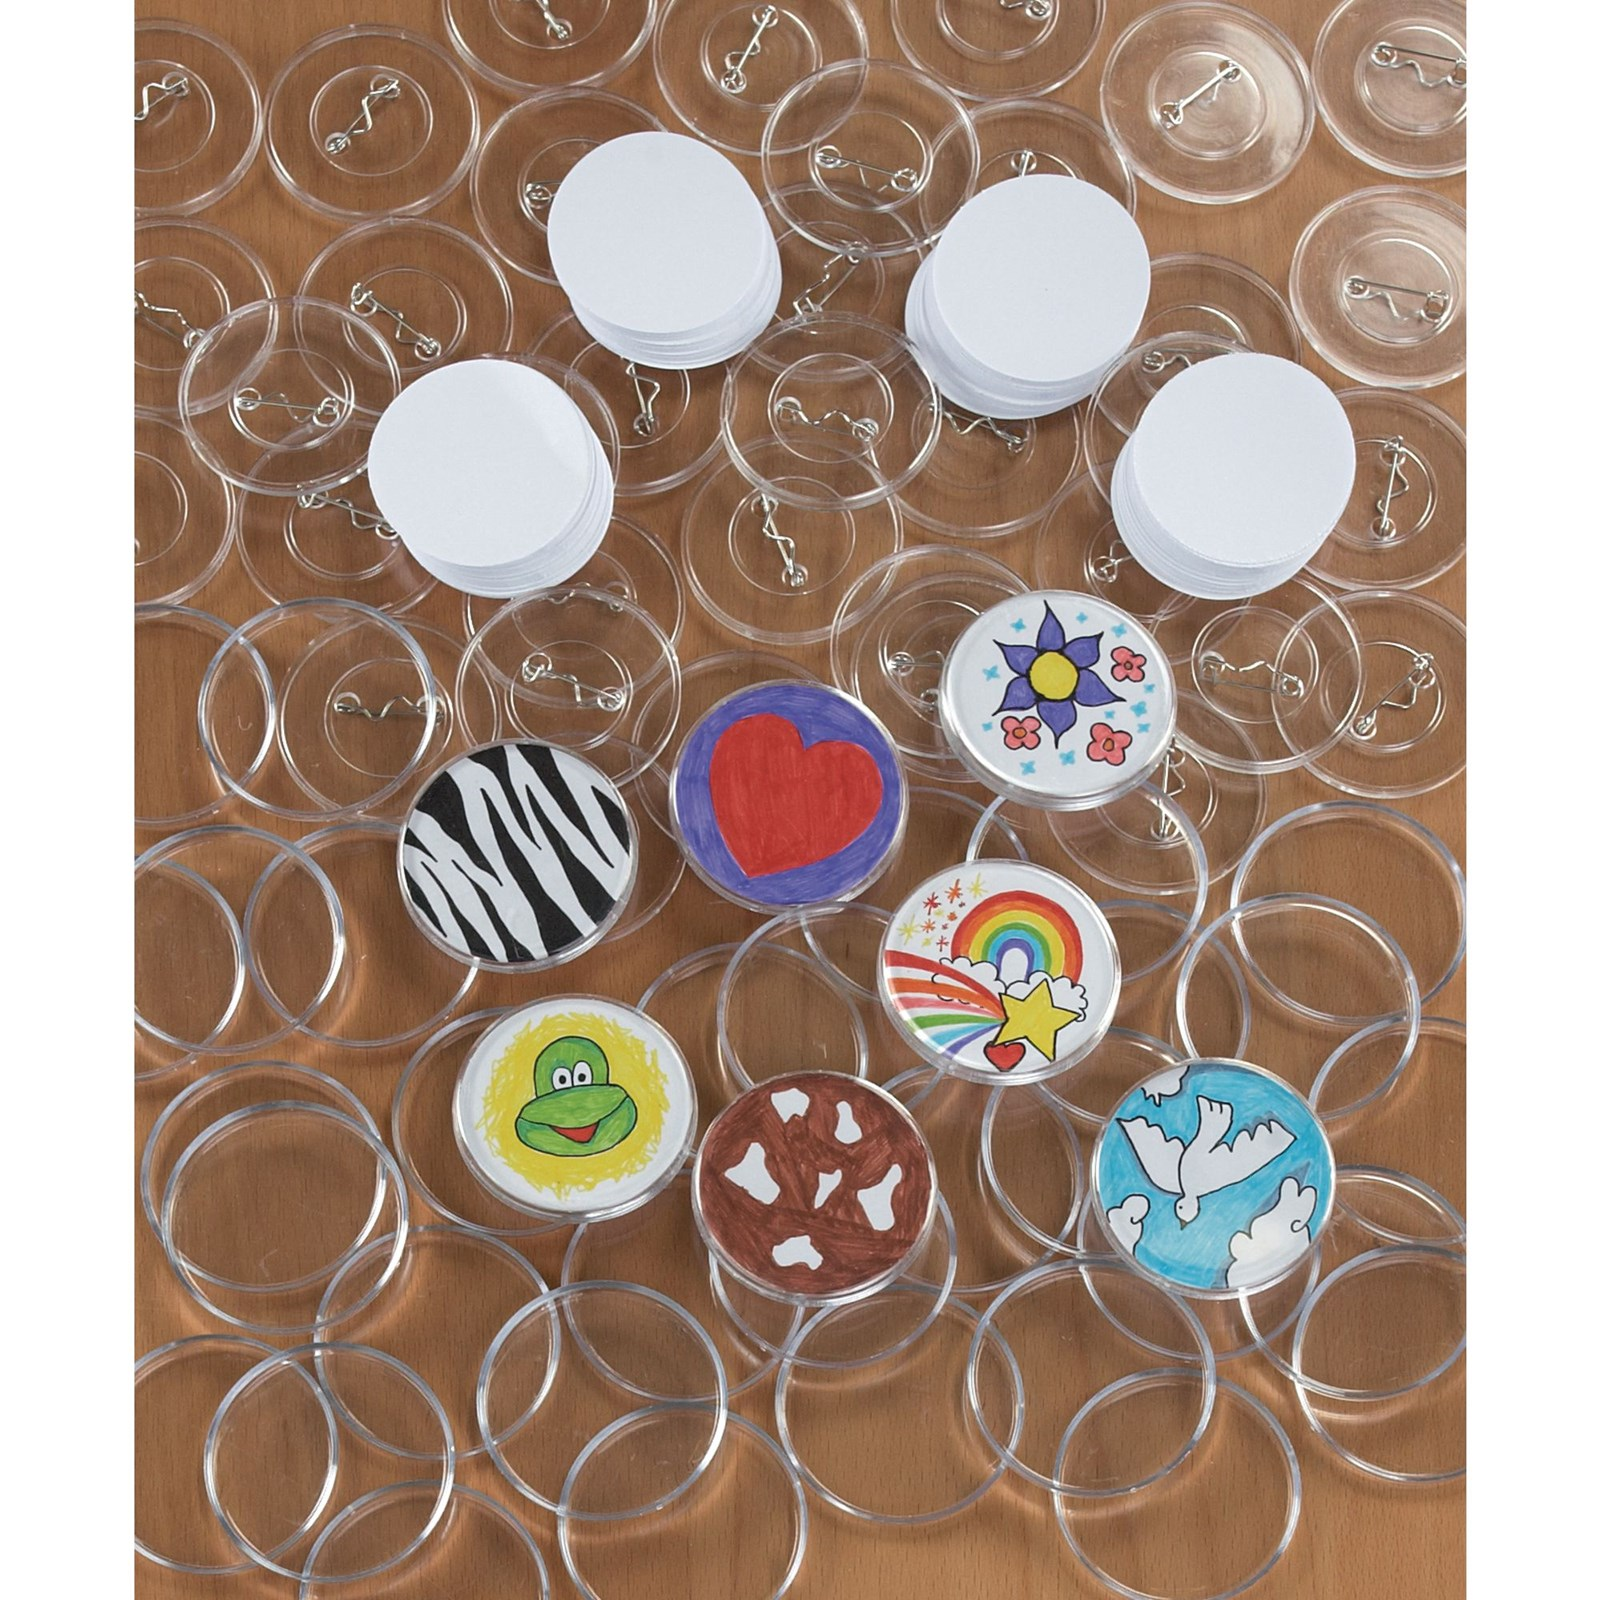 Self Assembly Badges Pack of 100